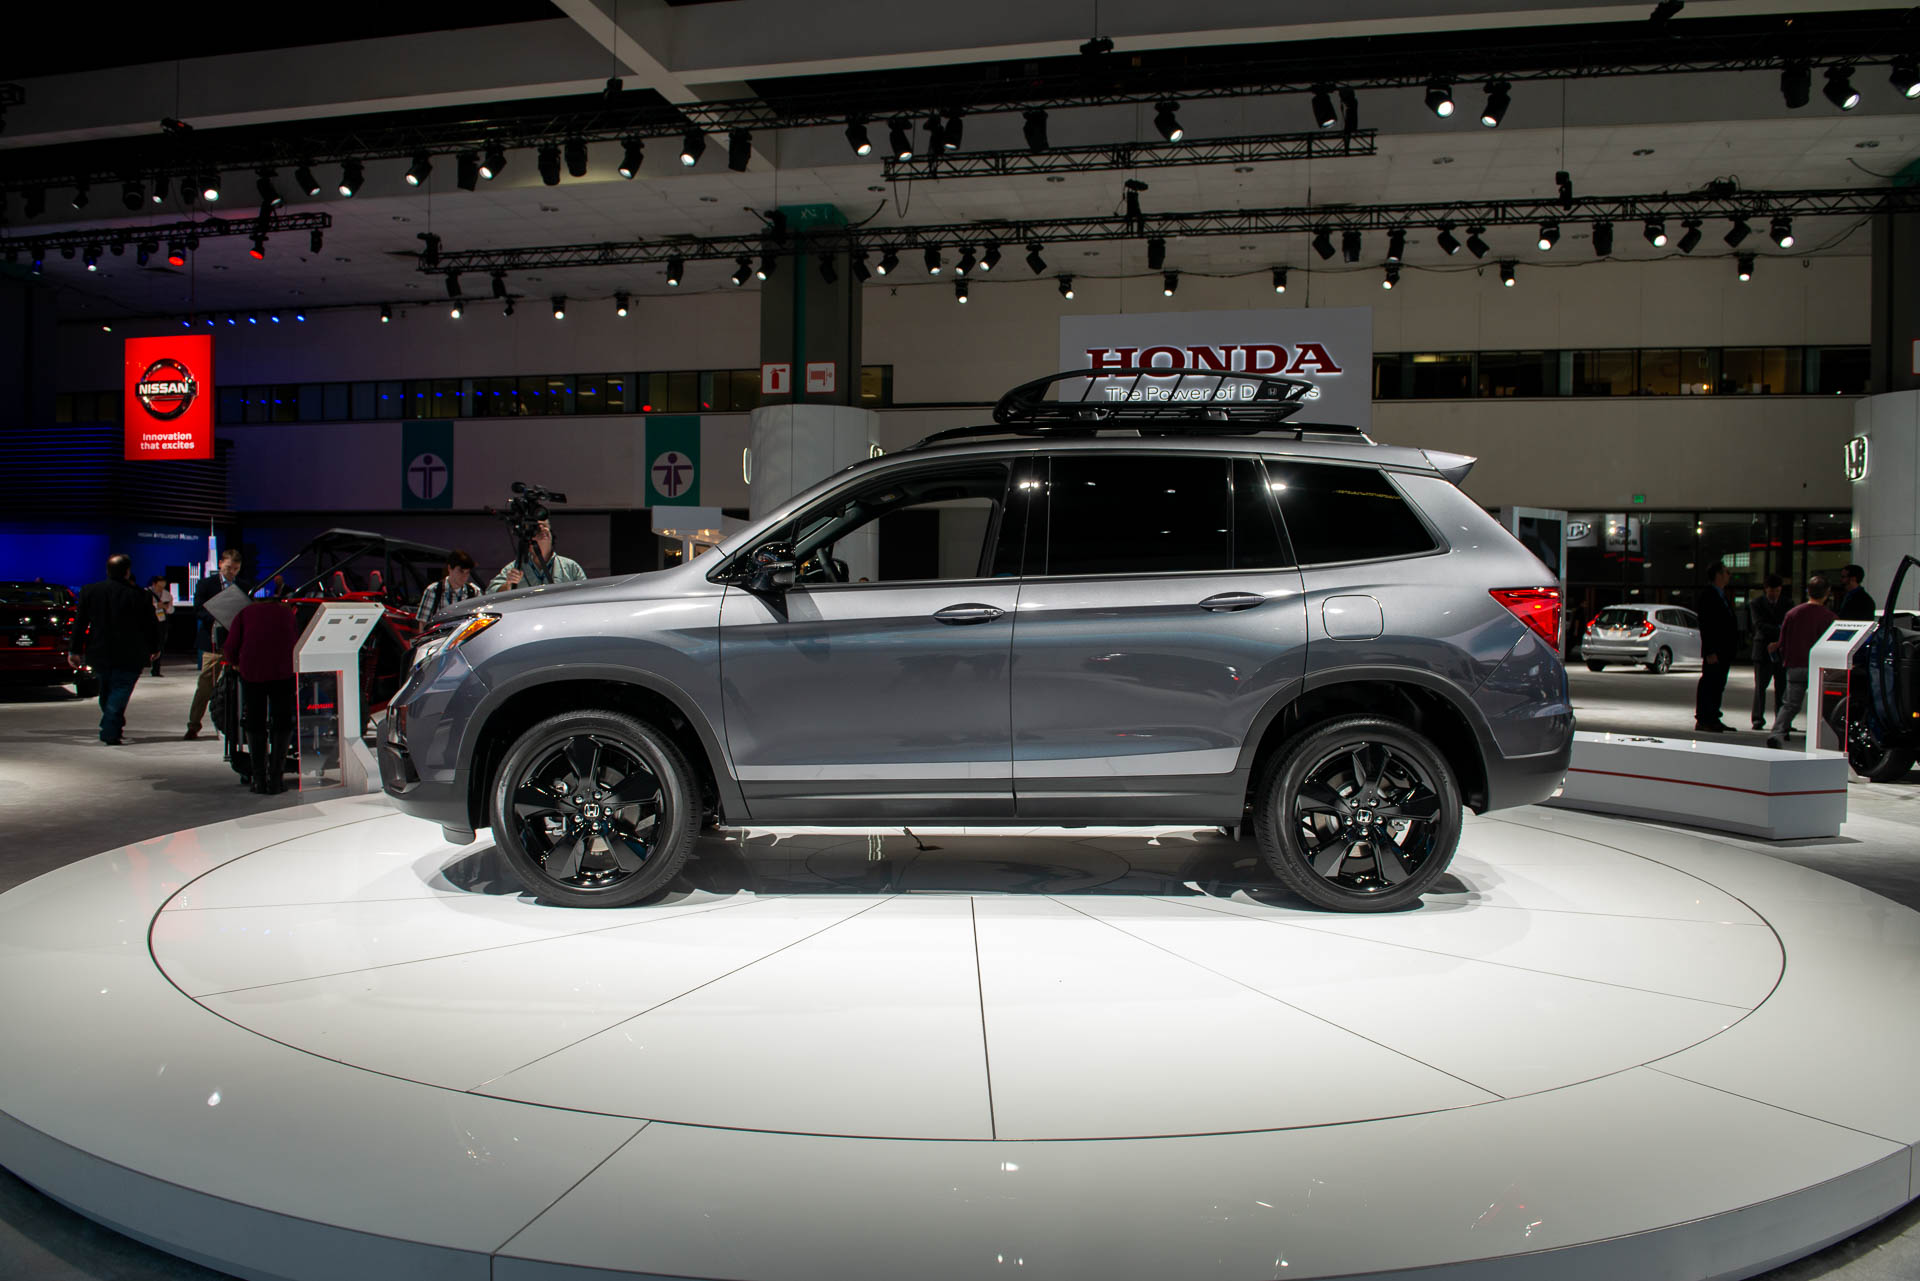 If you want to travel abroad, you need a passport. 2019 Honda Passport Crossover Suv Bows At 2018 La Auto Show